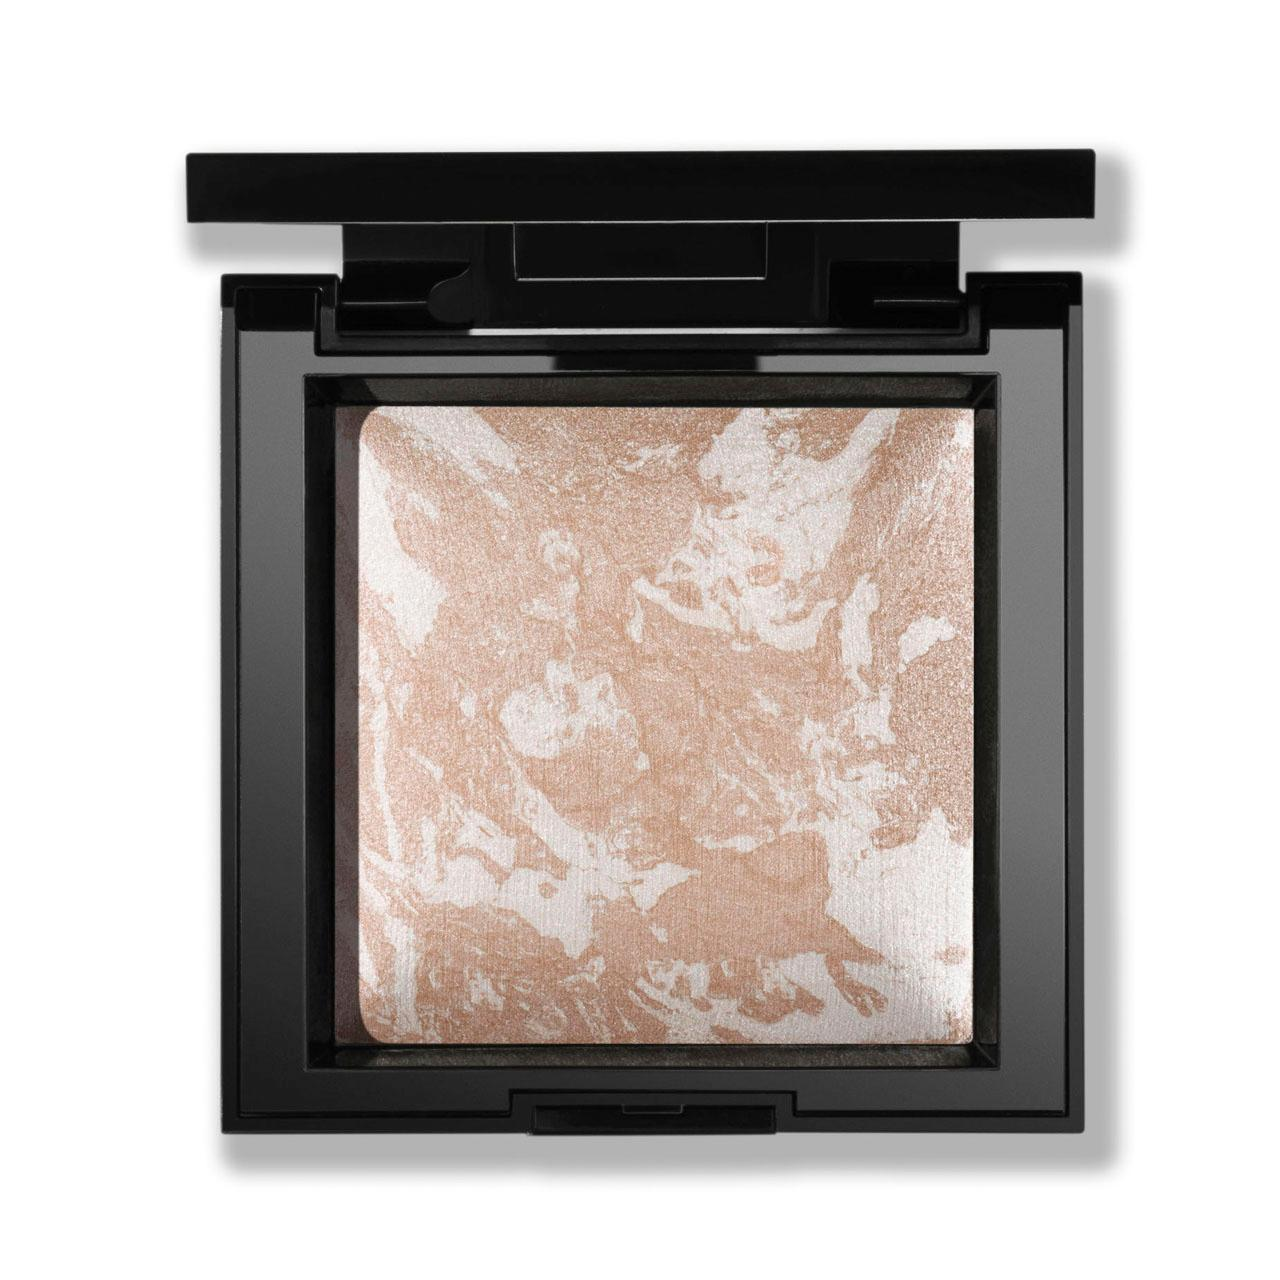 An image of bareMinerals Invisible Glow Fair to Light